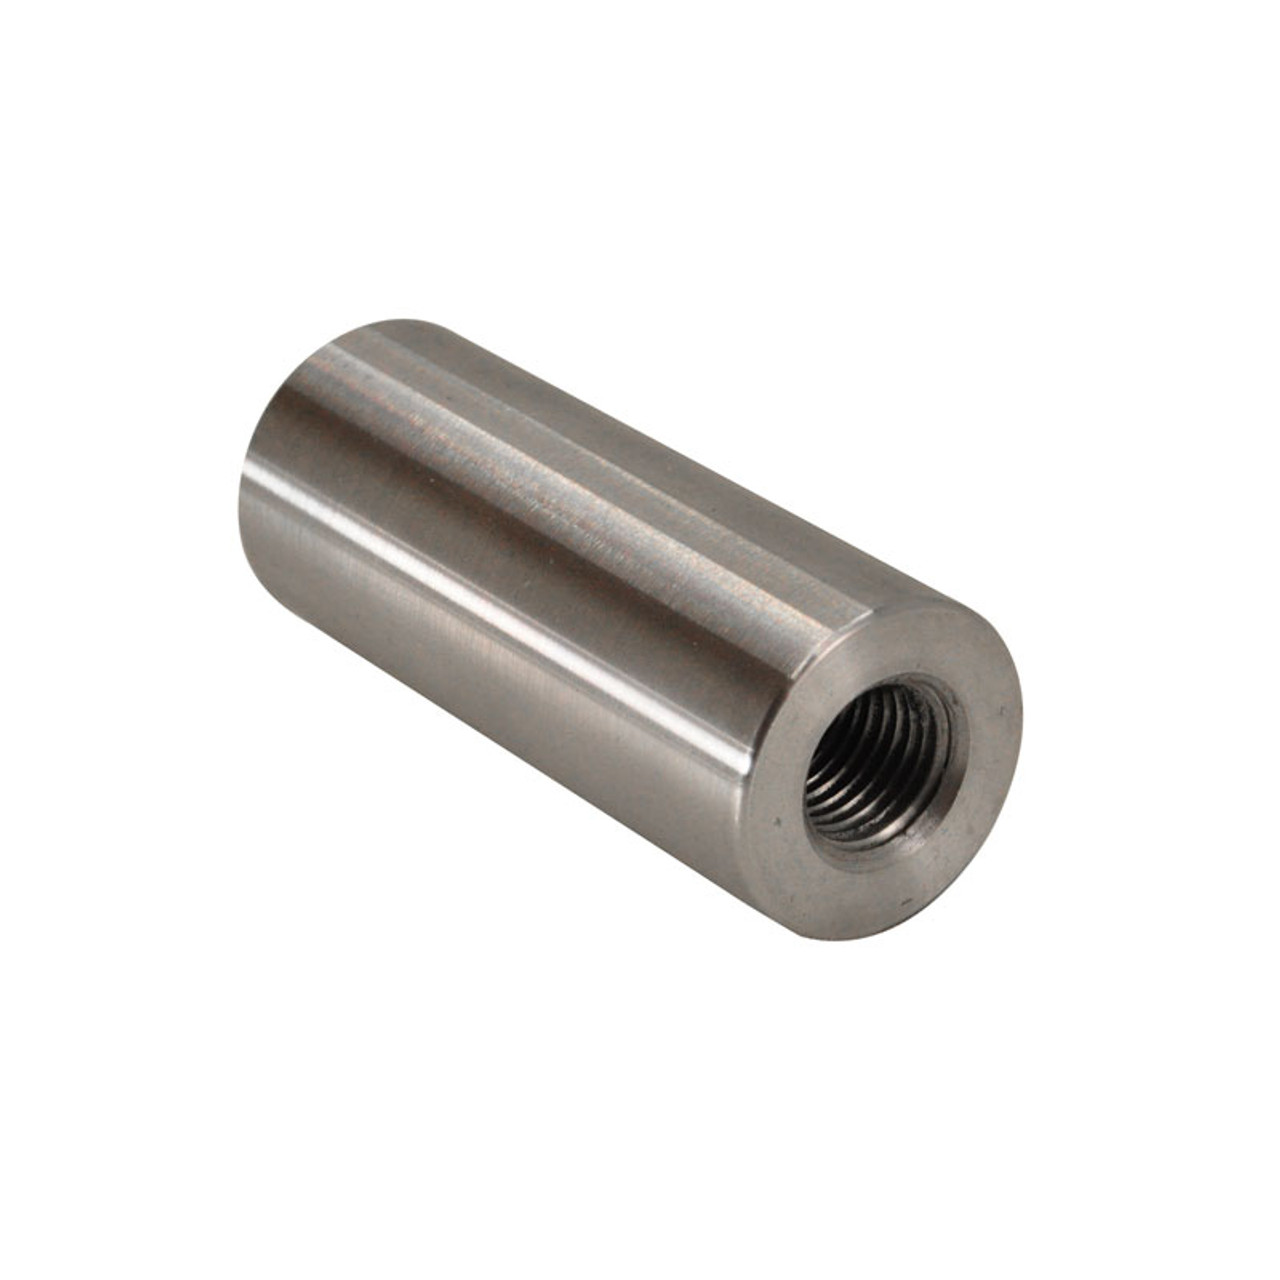 1 4 Npt >> Frisco Bung 1 4 Npt Tapered Thread Great For Mounting Petcocks Mild Steel Made In Usa